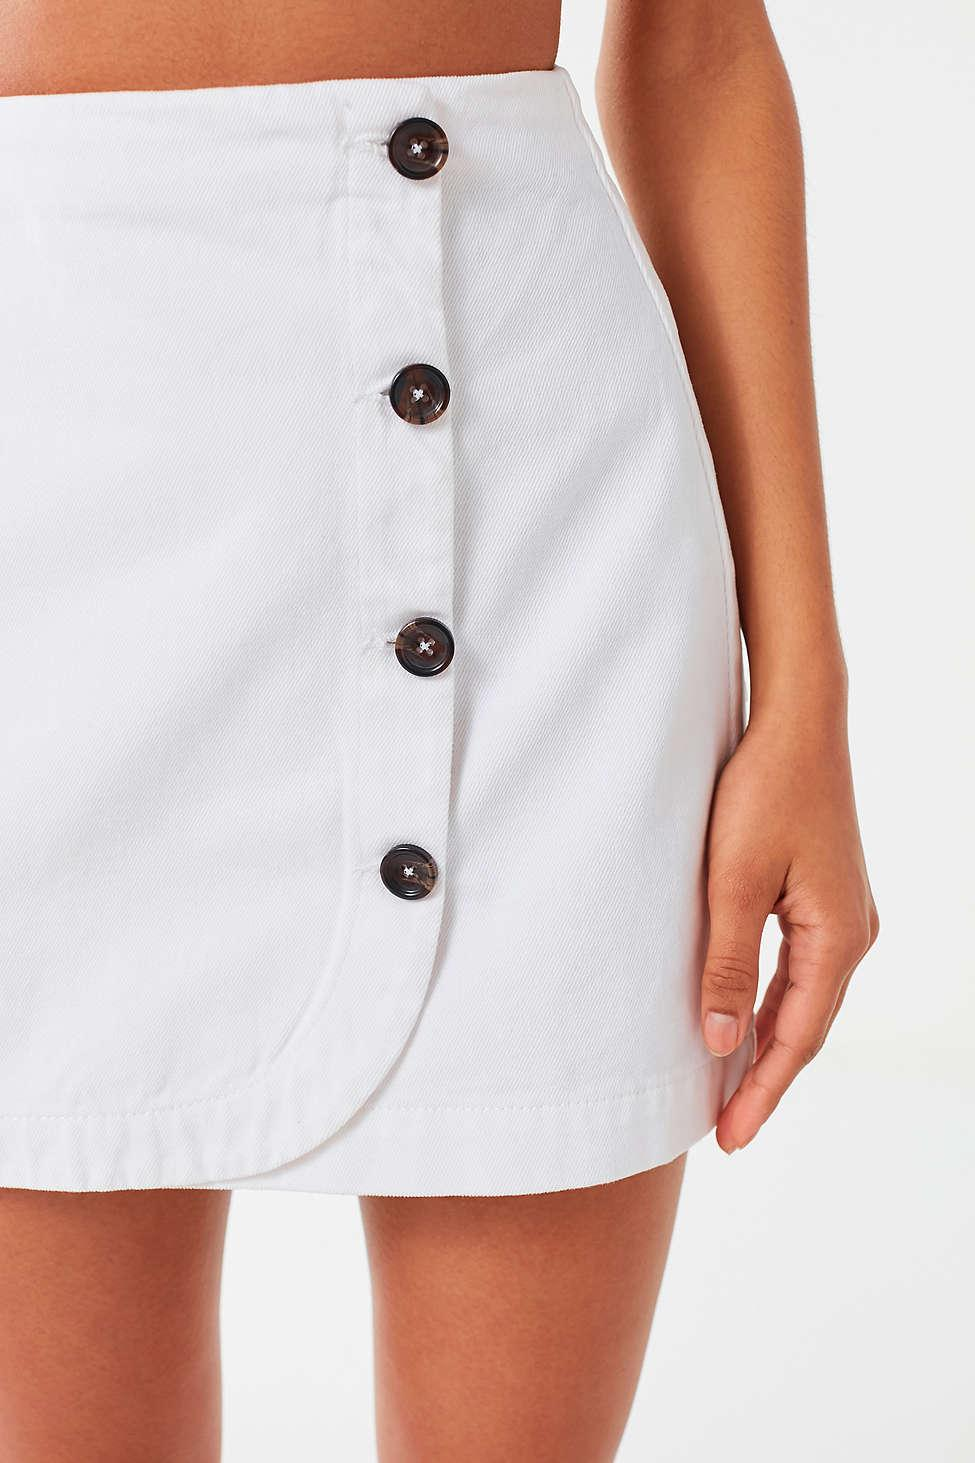 43c8bc1b2191 Urban Outfitters Uo Shelly Twill Button-down Wrap Mini Skirt in ...